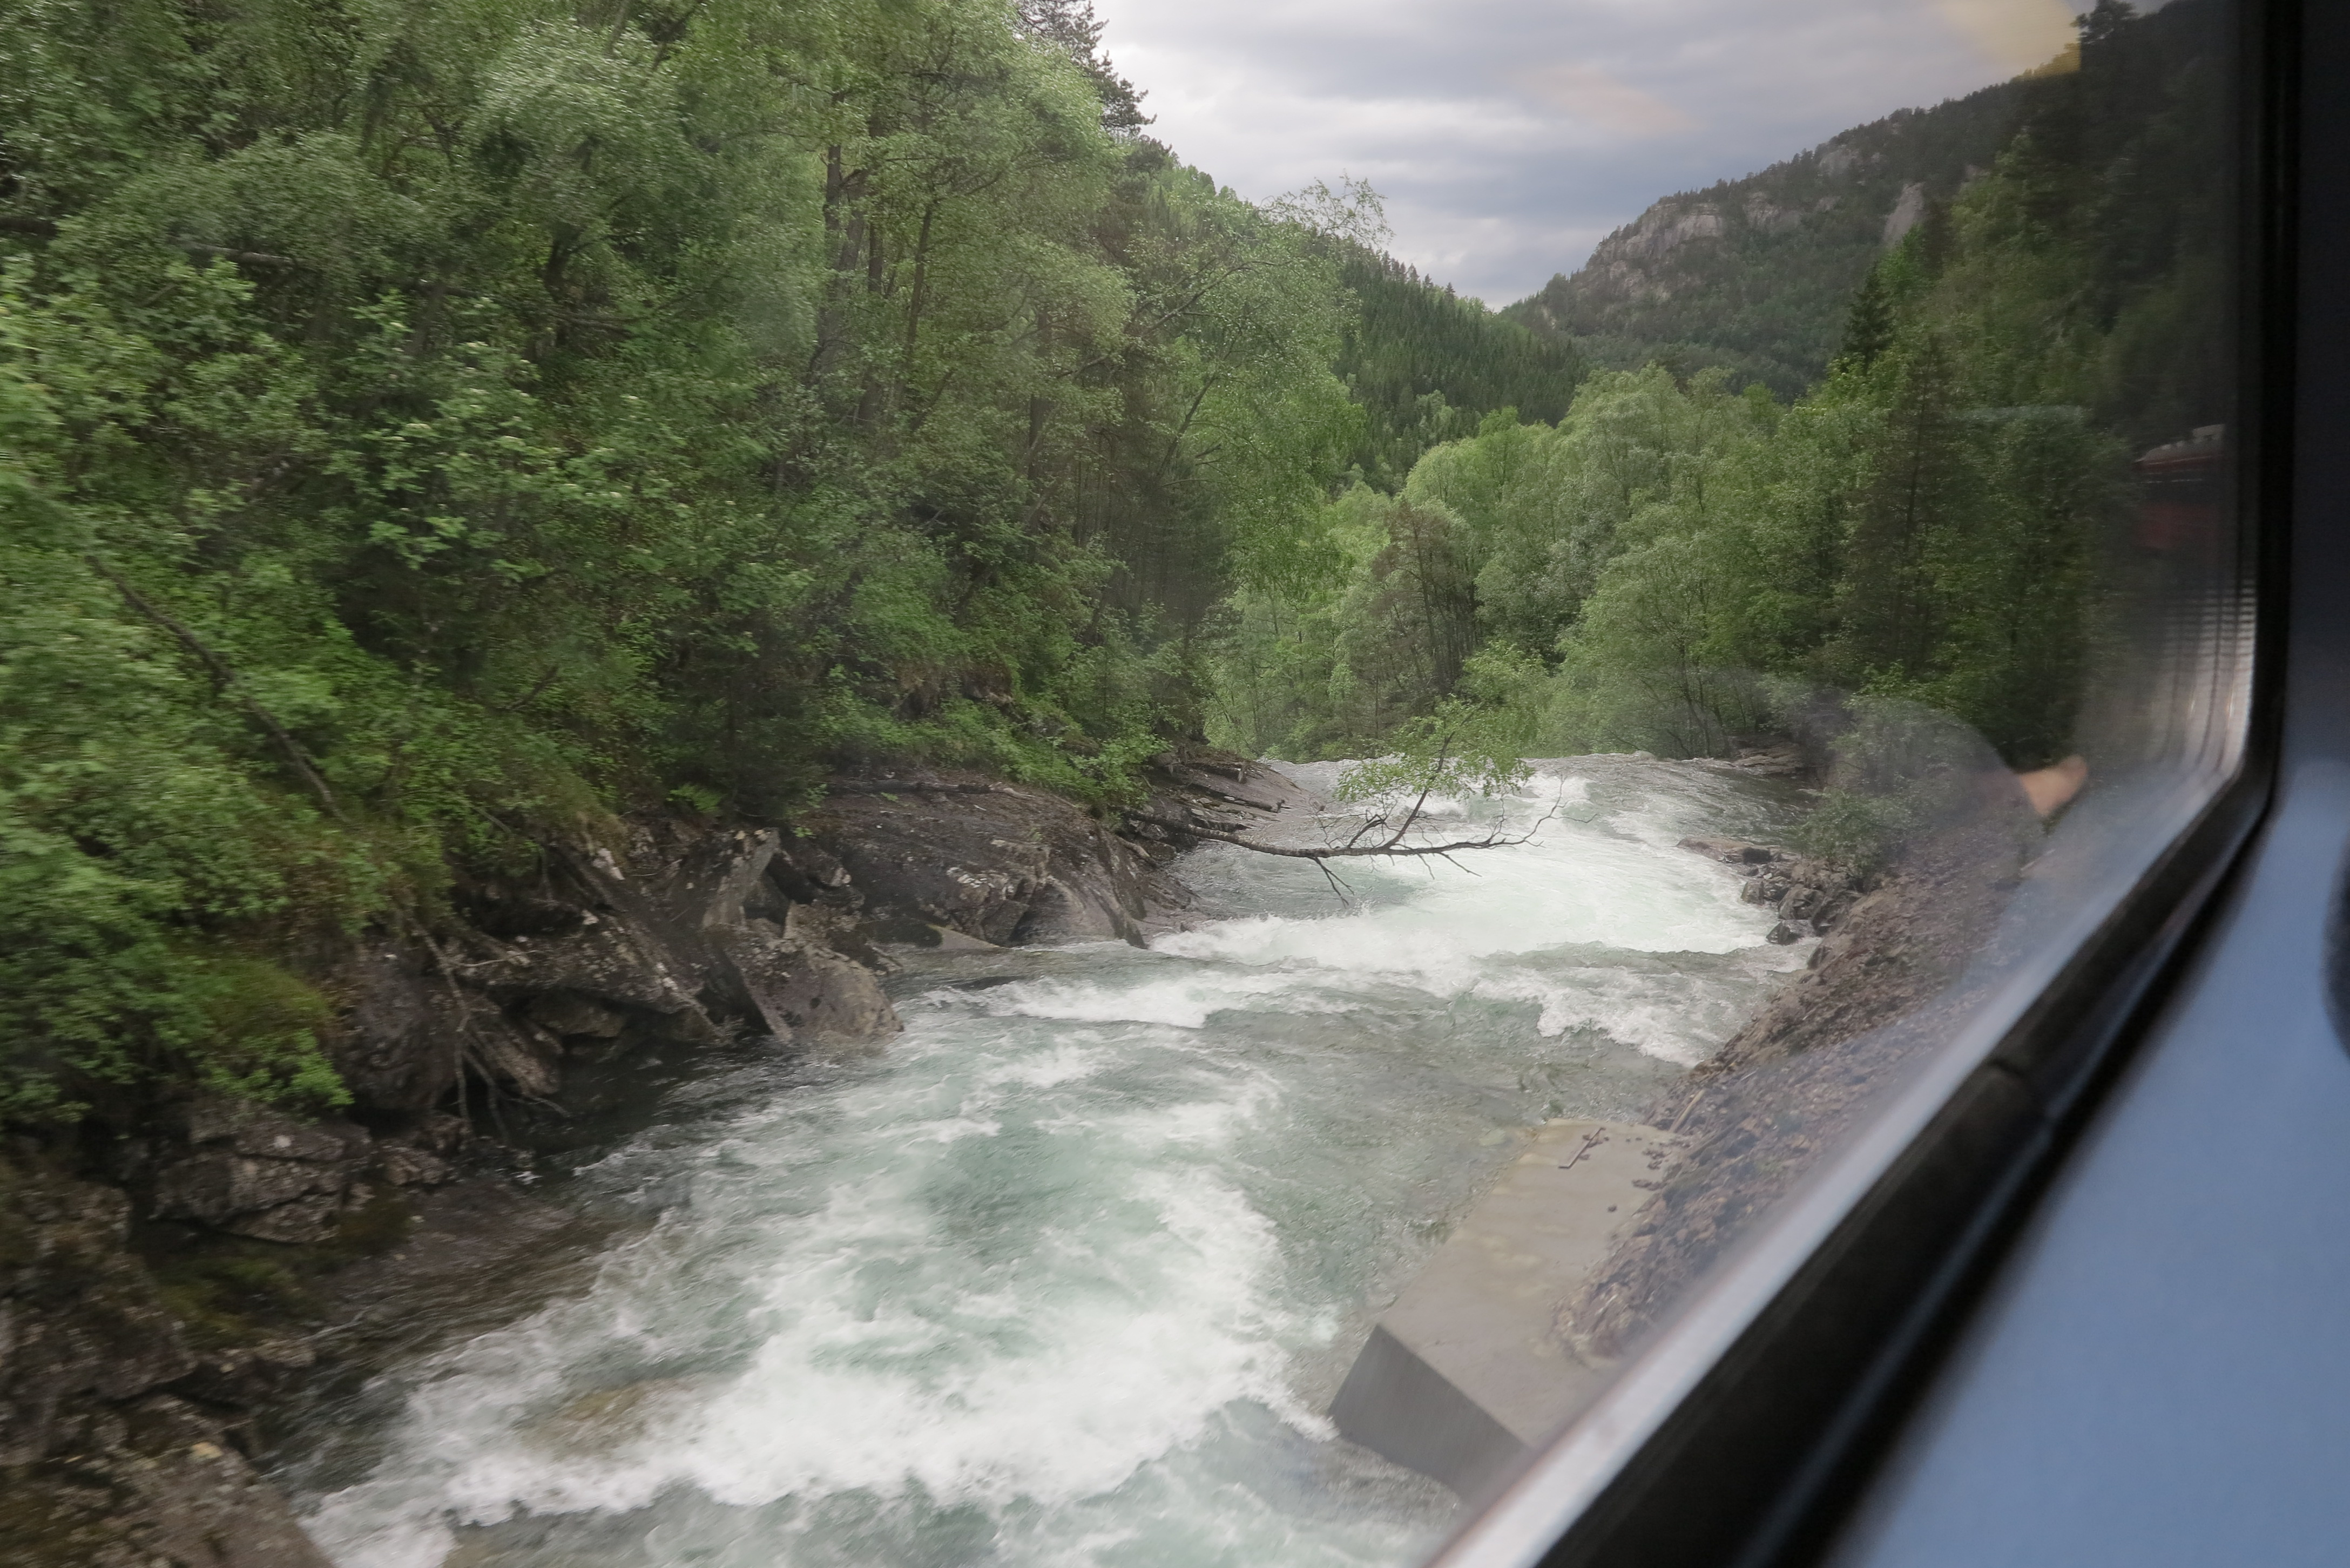 View from a train: One of the many sights from the railway between